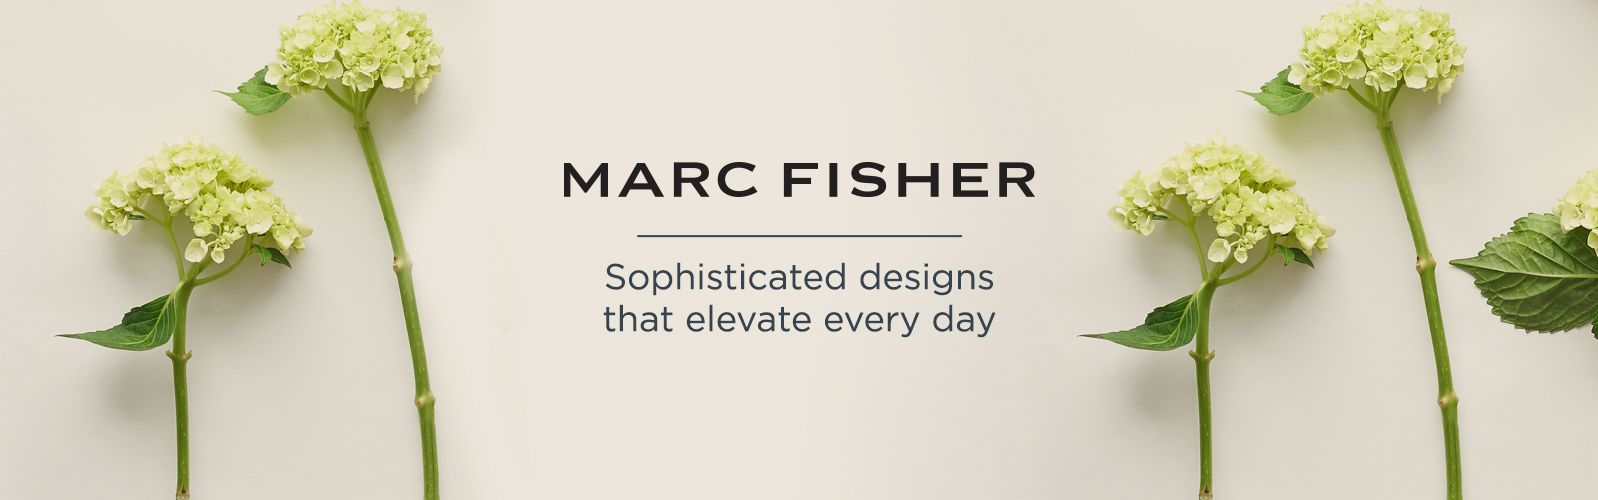 Marc Fisher. Sophisticated designs that elevate every day